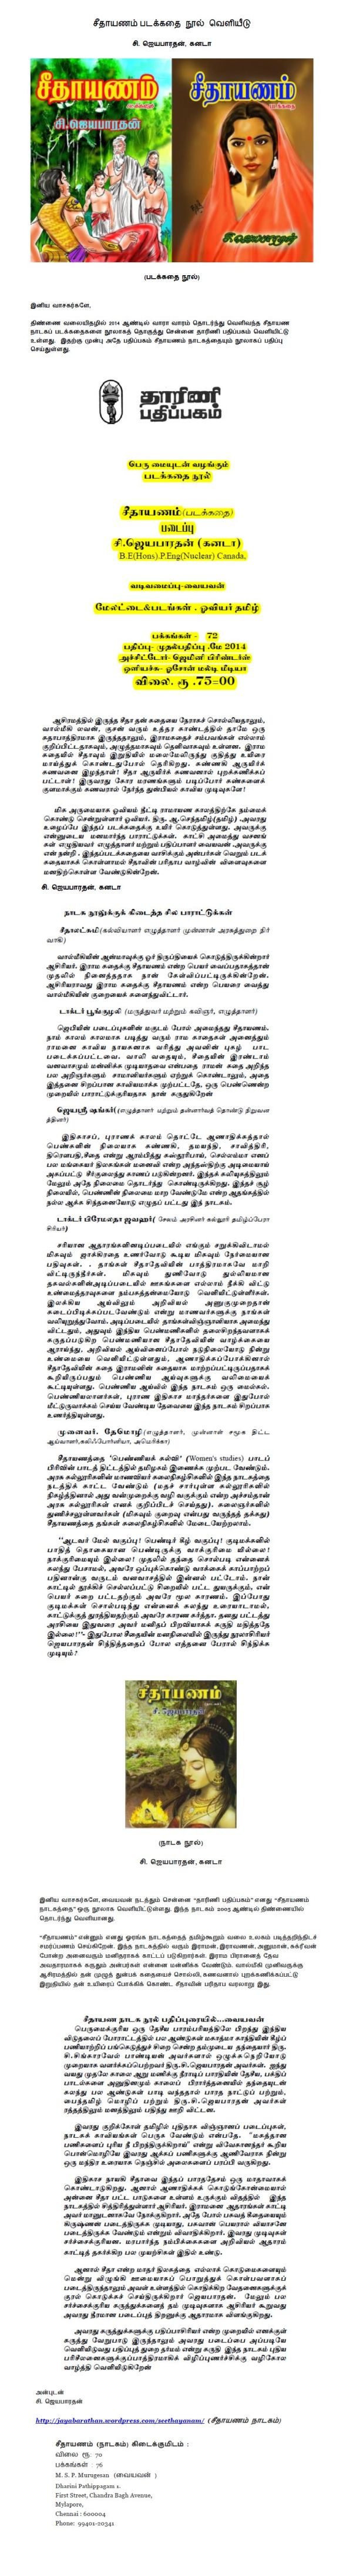 Seethayanam Drama and Padakathai Publications